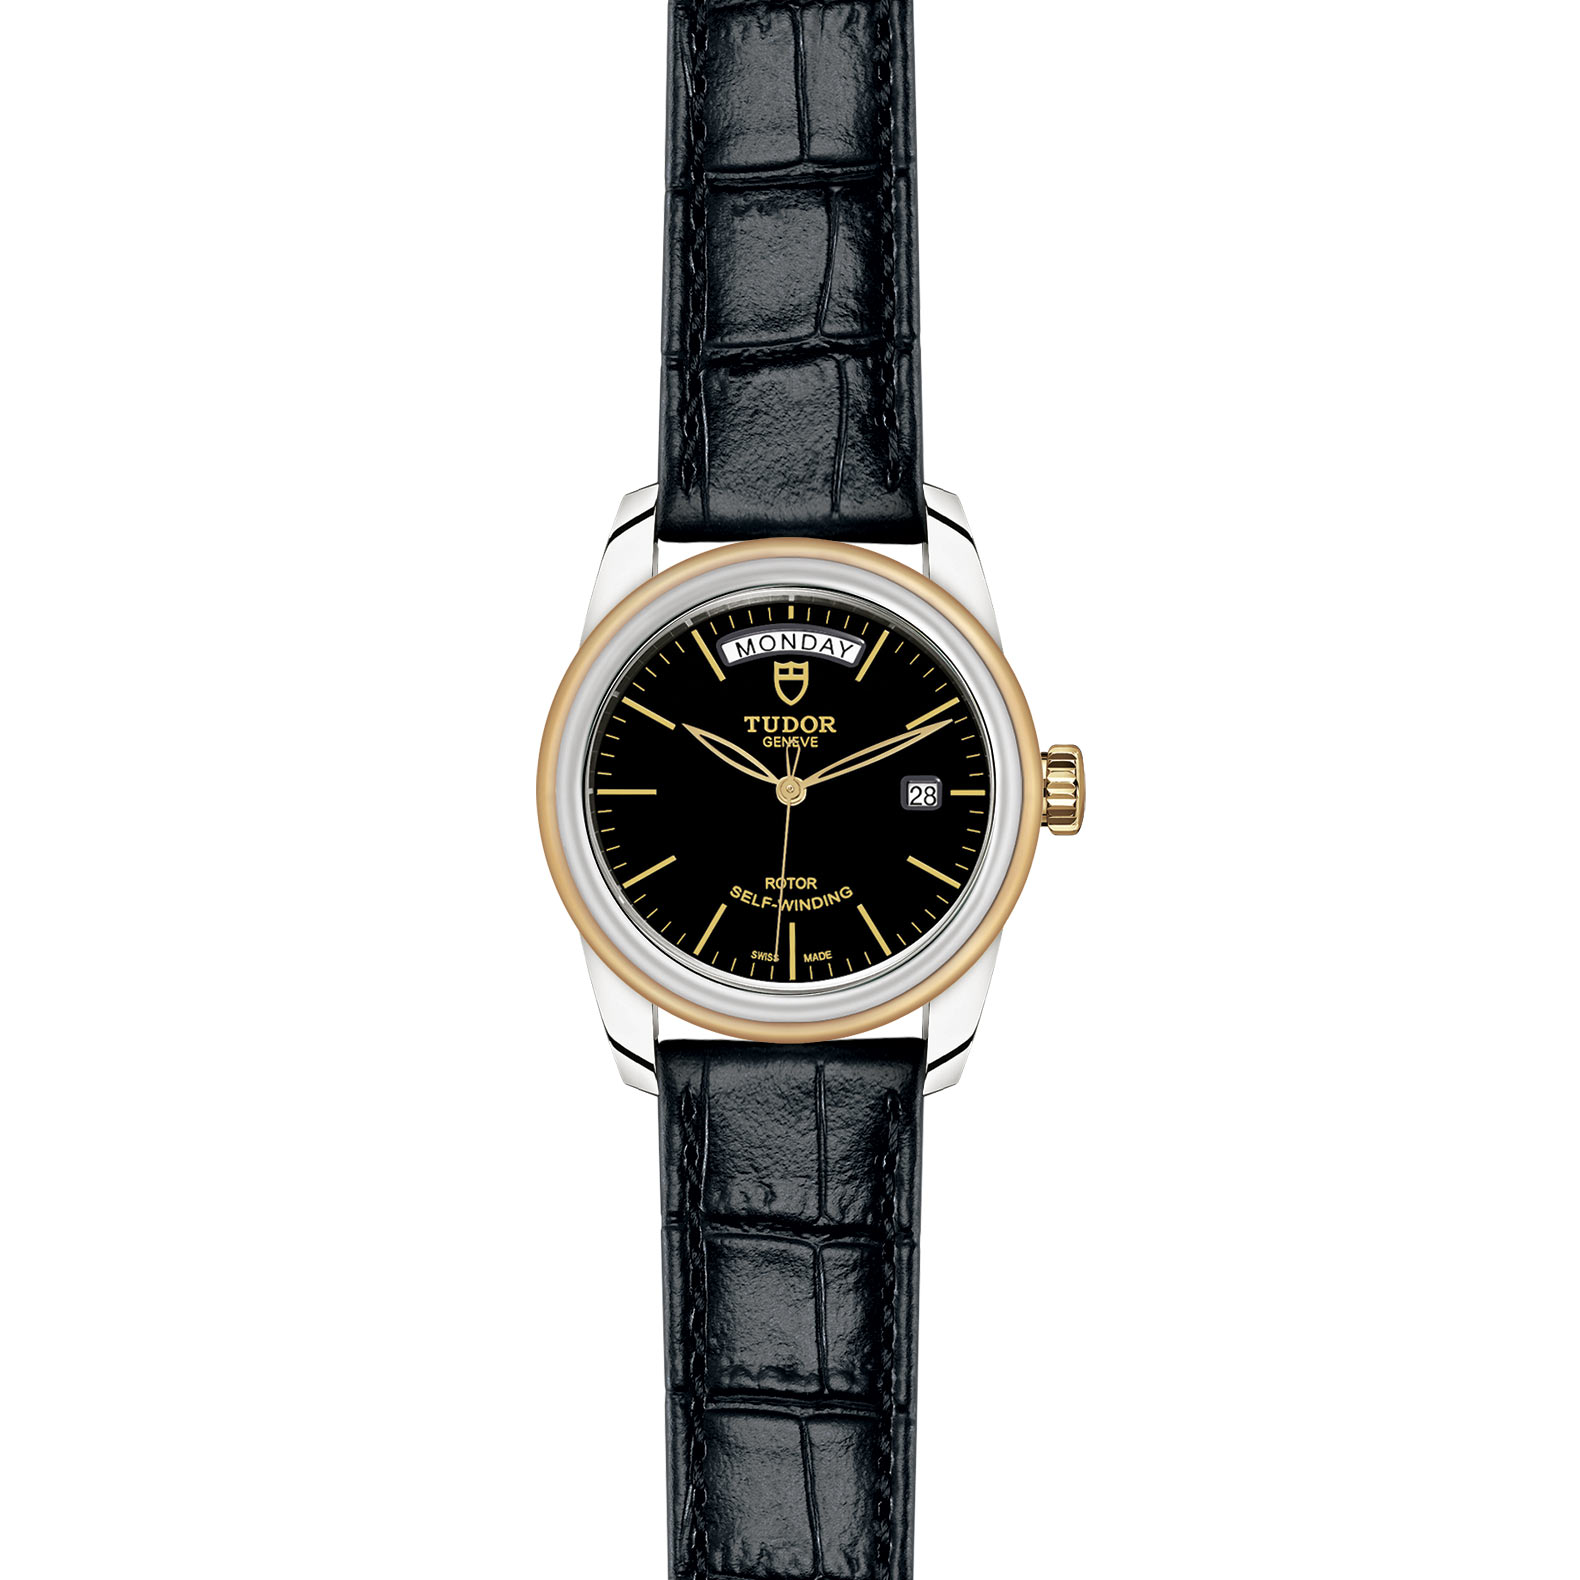 TUDOR Glamour Date Day M56003 0040 Frontfacing